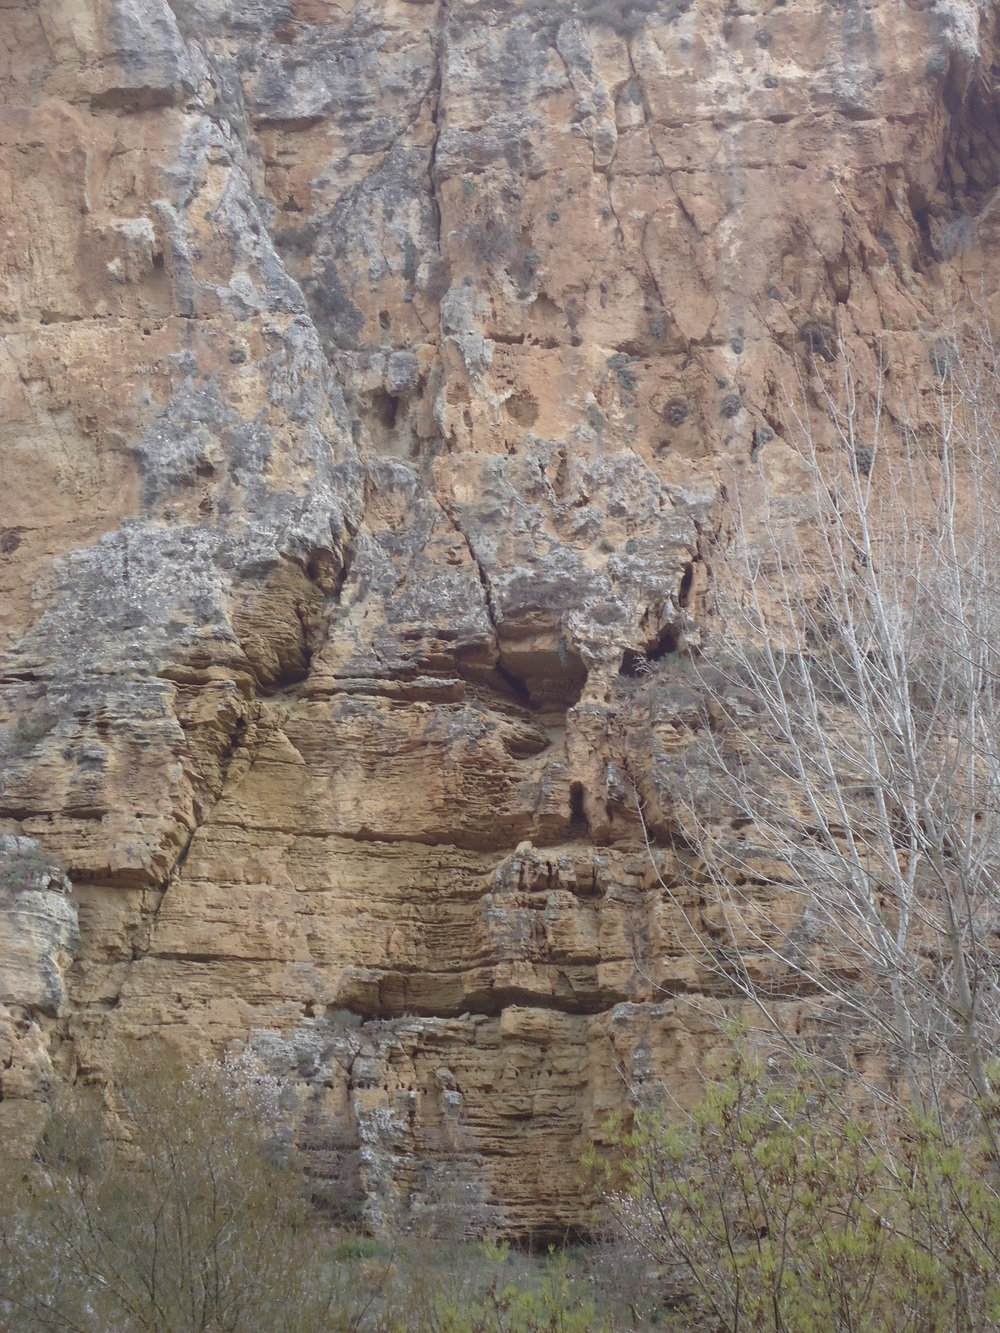 The side of the gorge